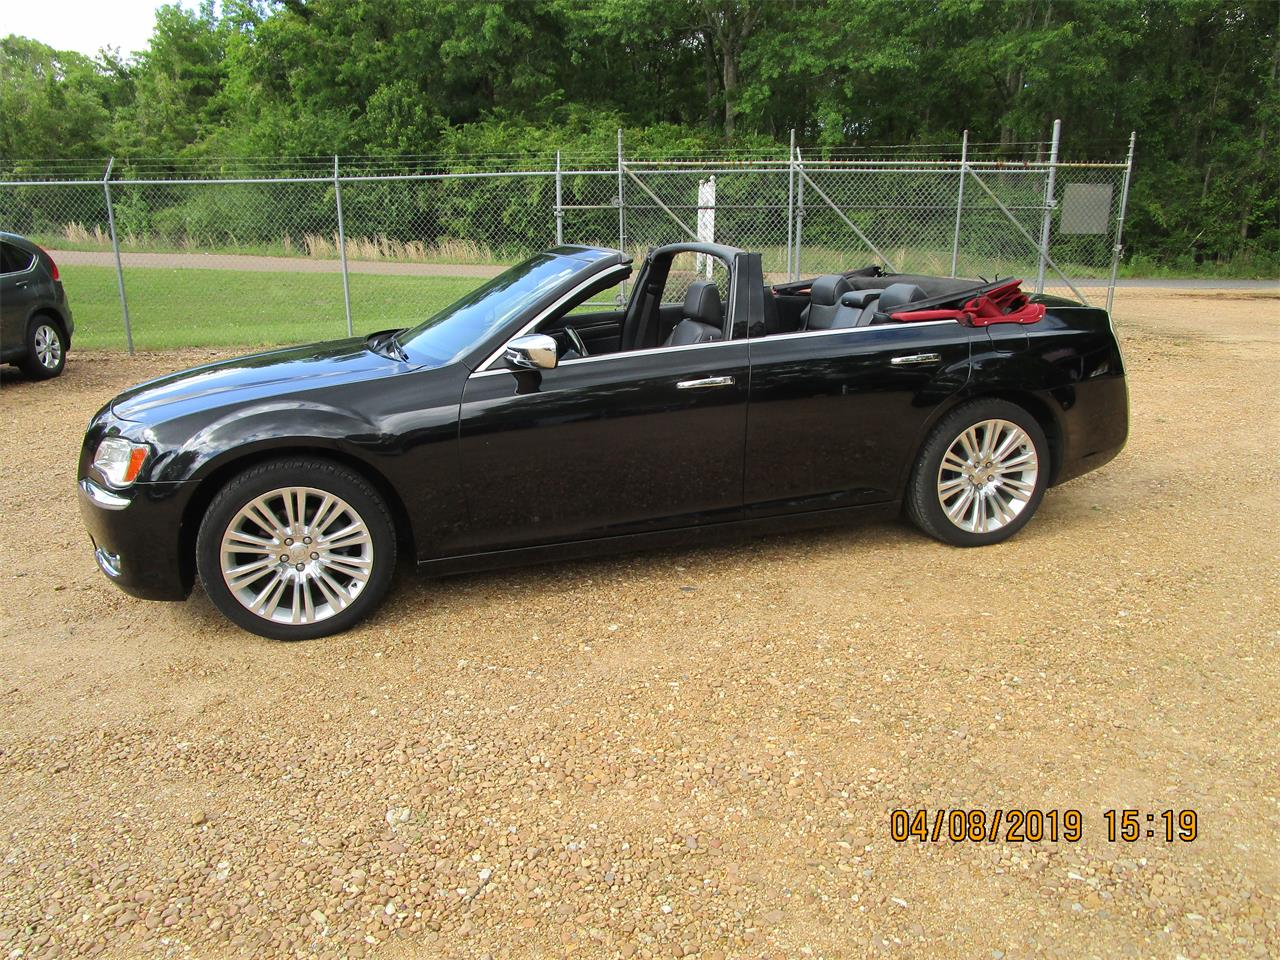 2011 Chrysler 300 for sale in Summit, MS – photo 16